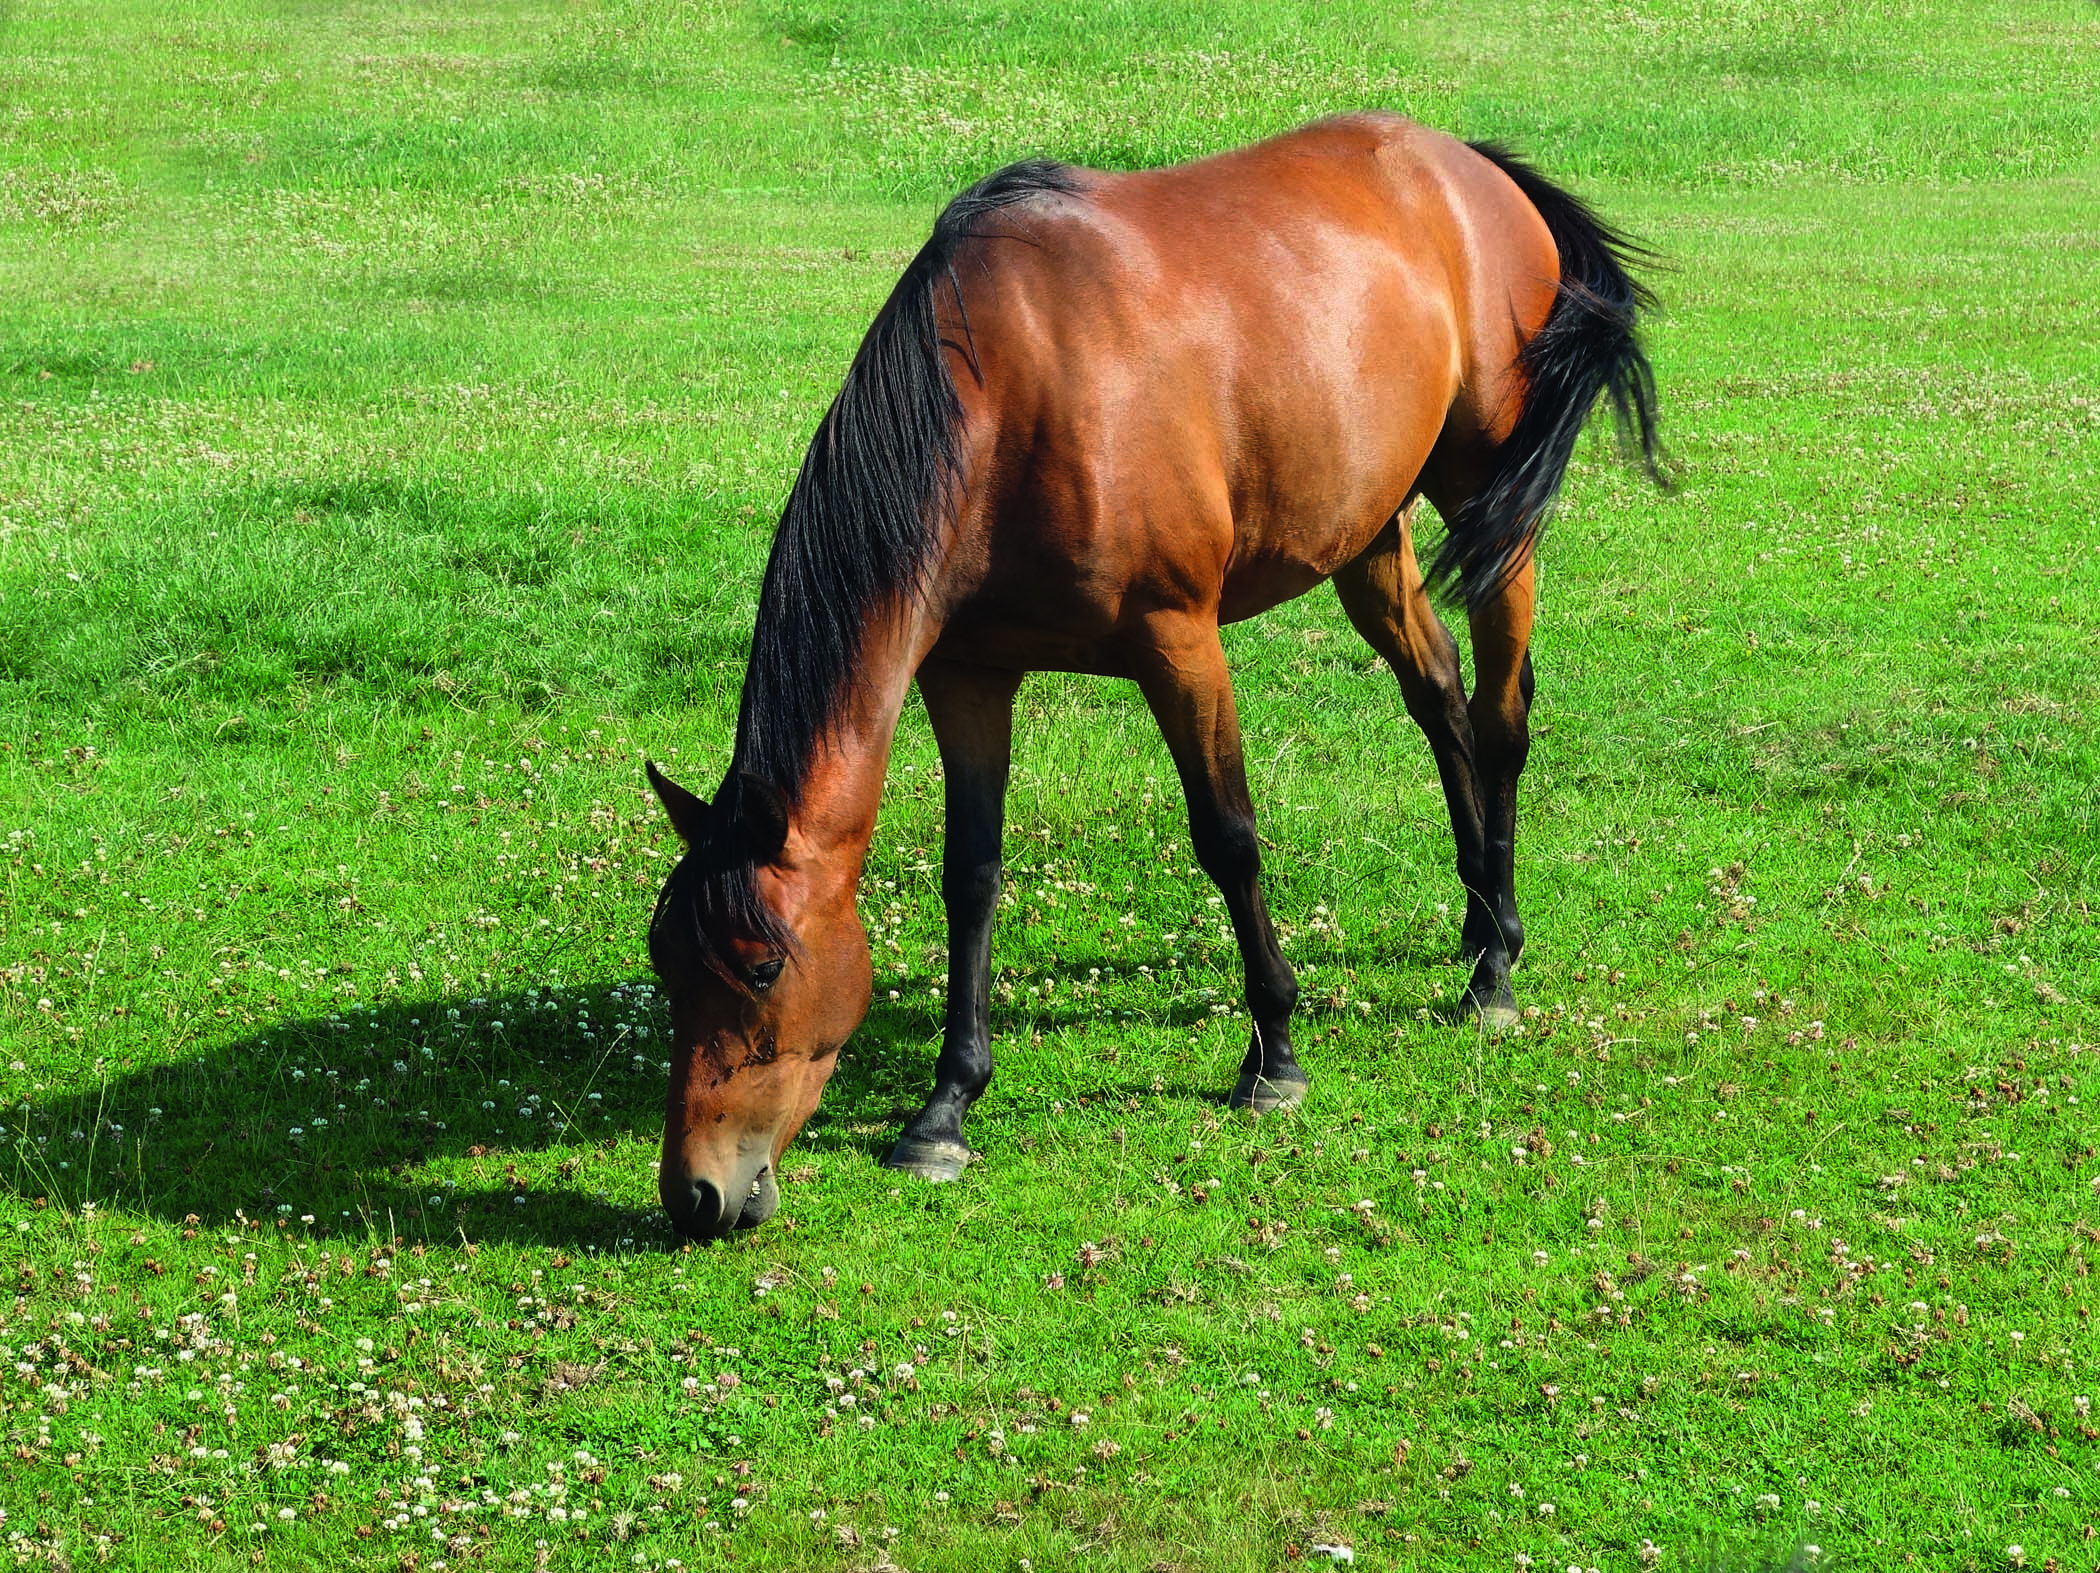 Study will give clues on liver fluke infection in horses